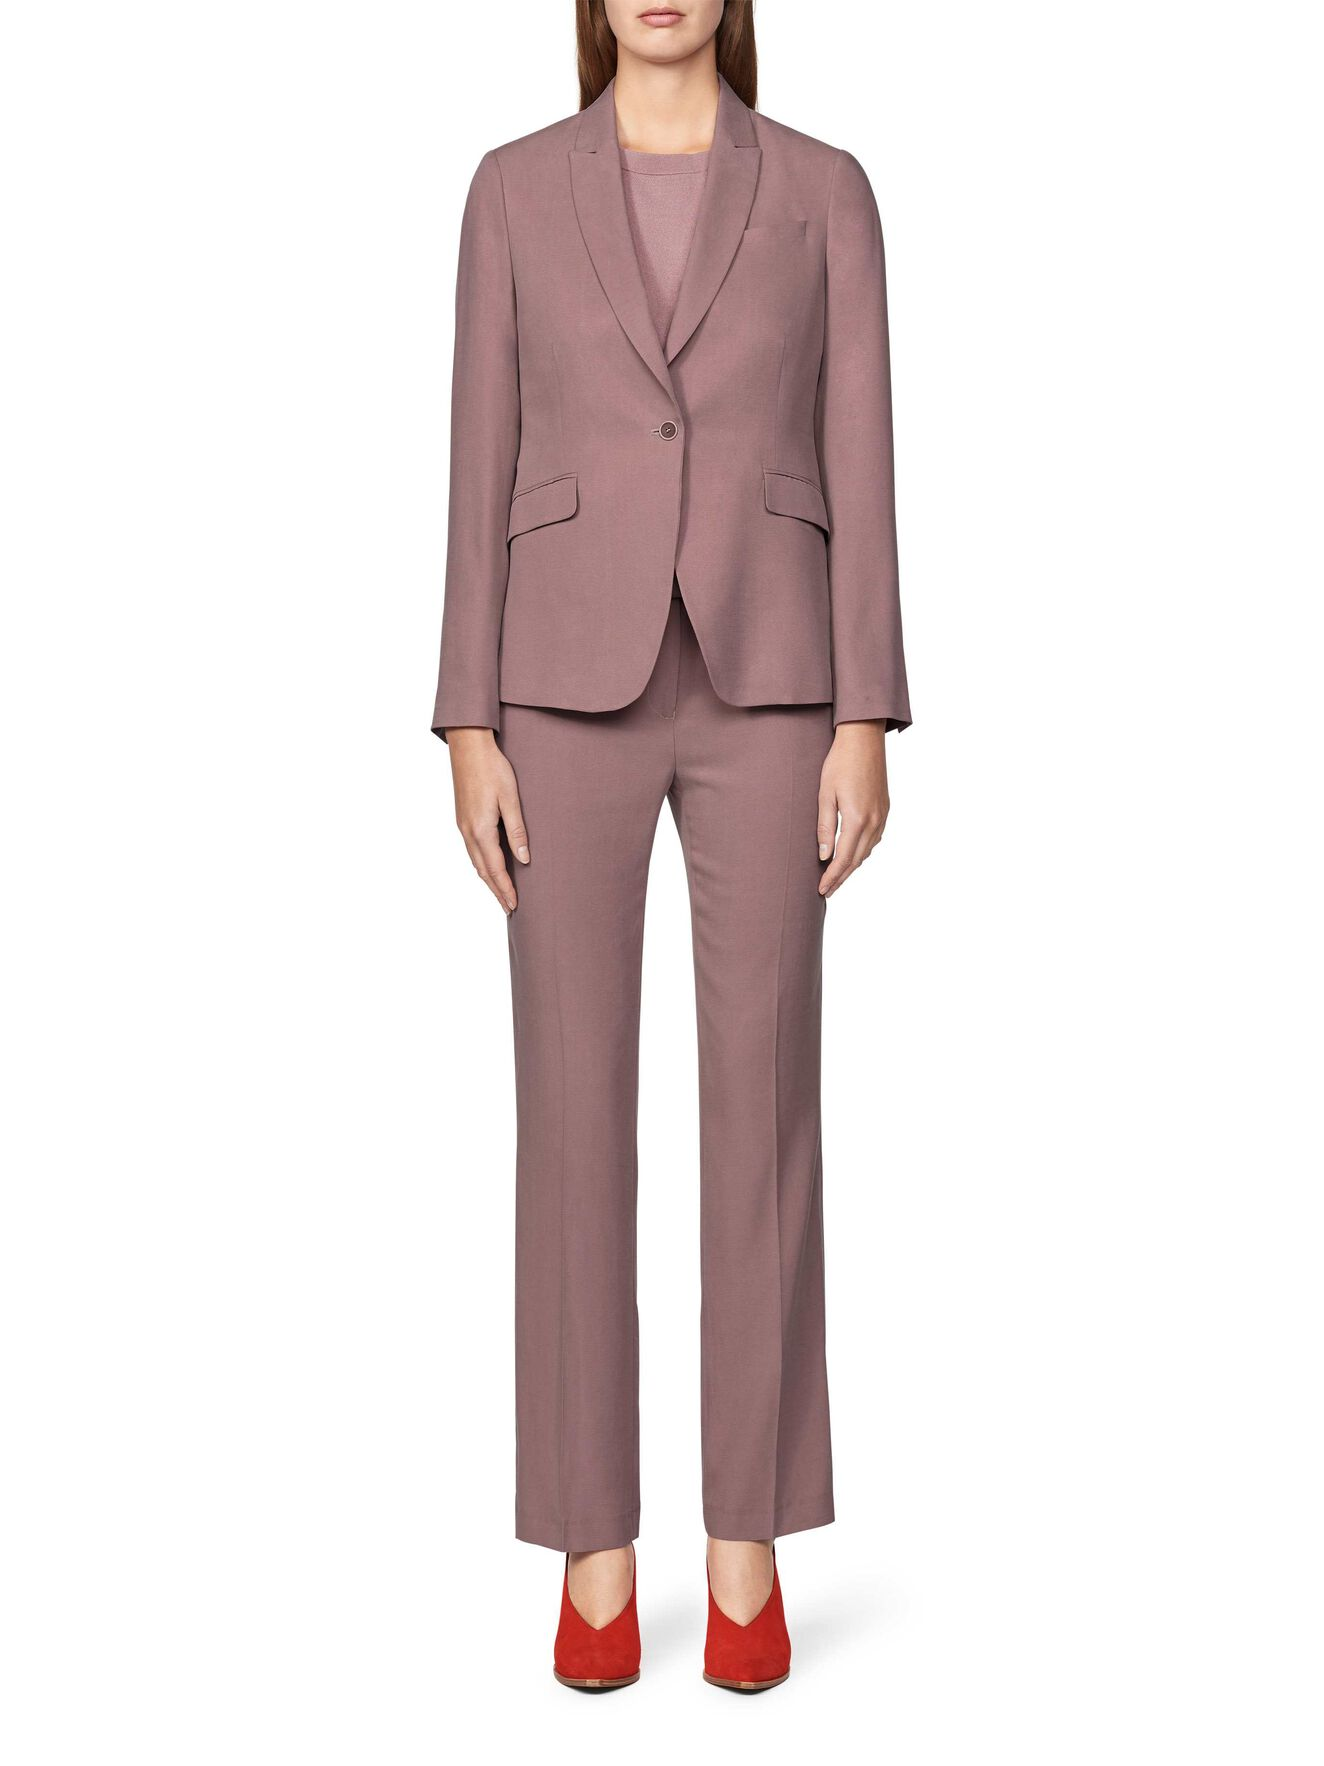 RUMA 2 BLAZER in Mellow Mulberry from Tiger of Sweden